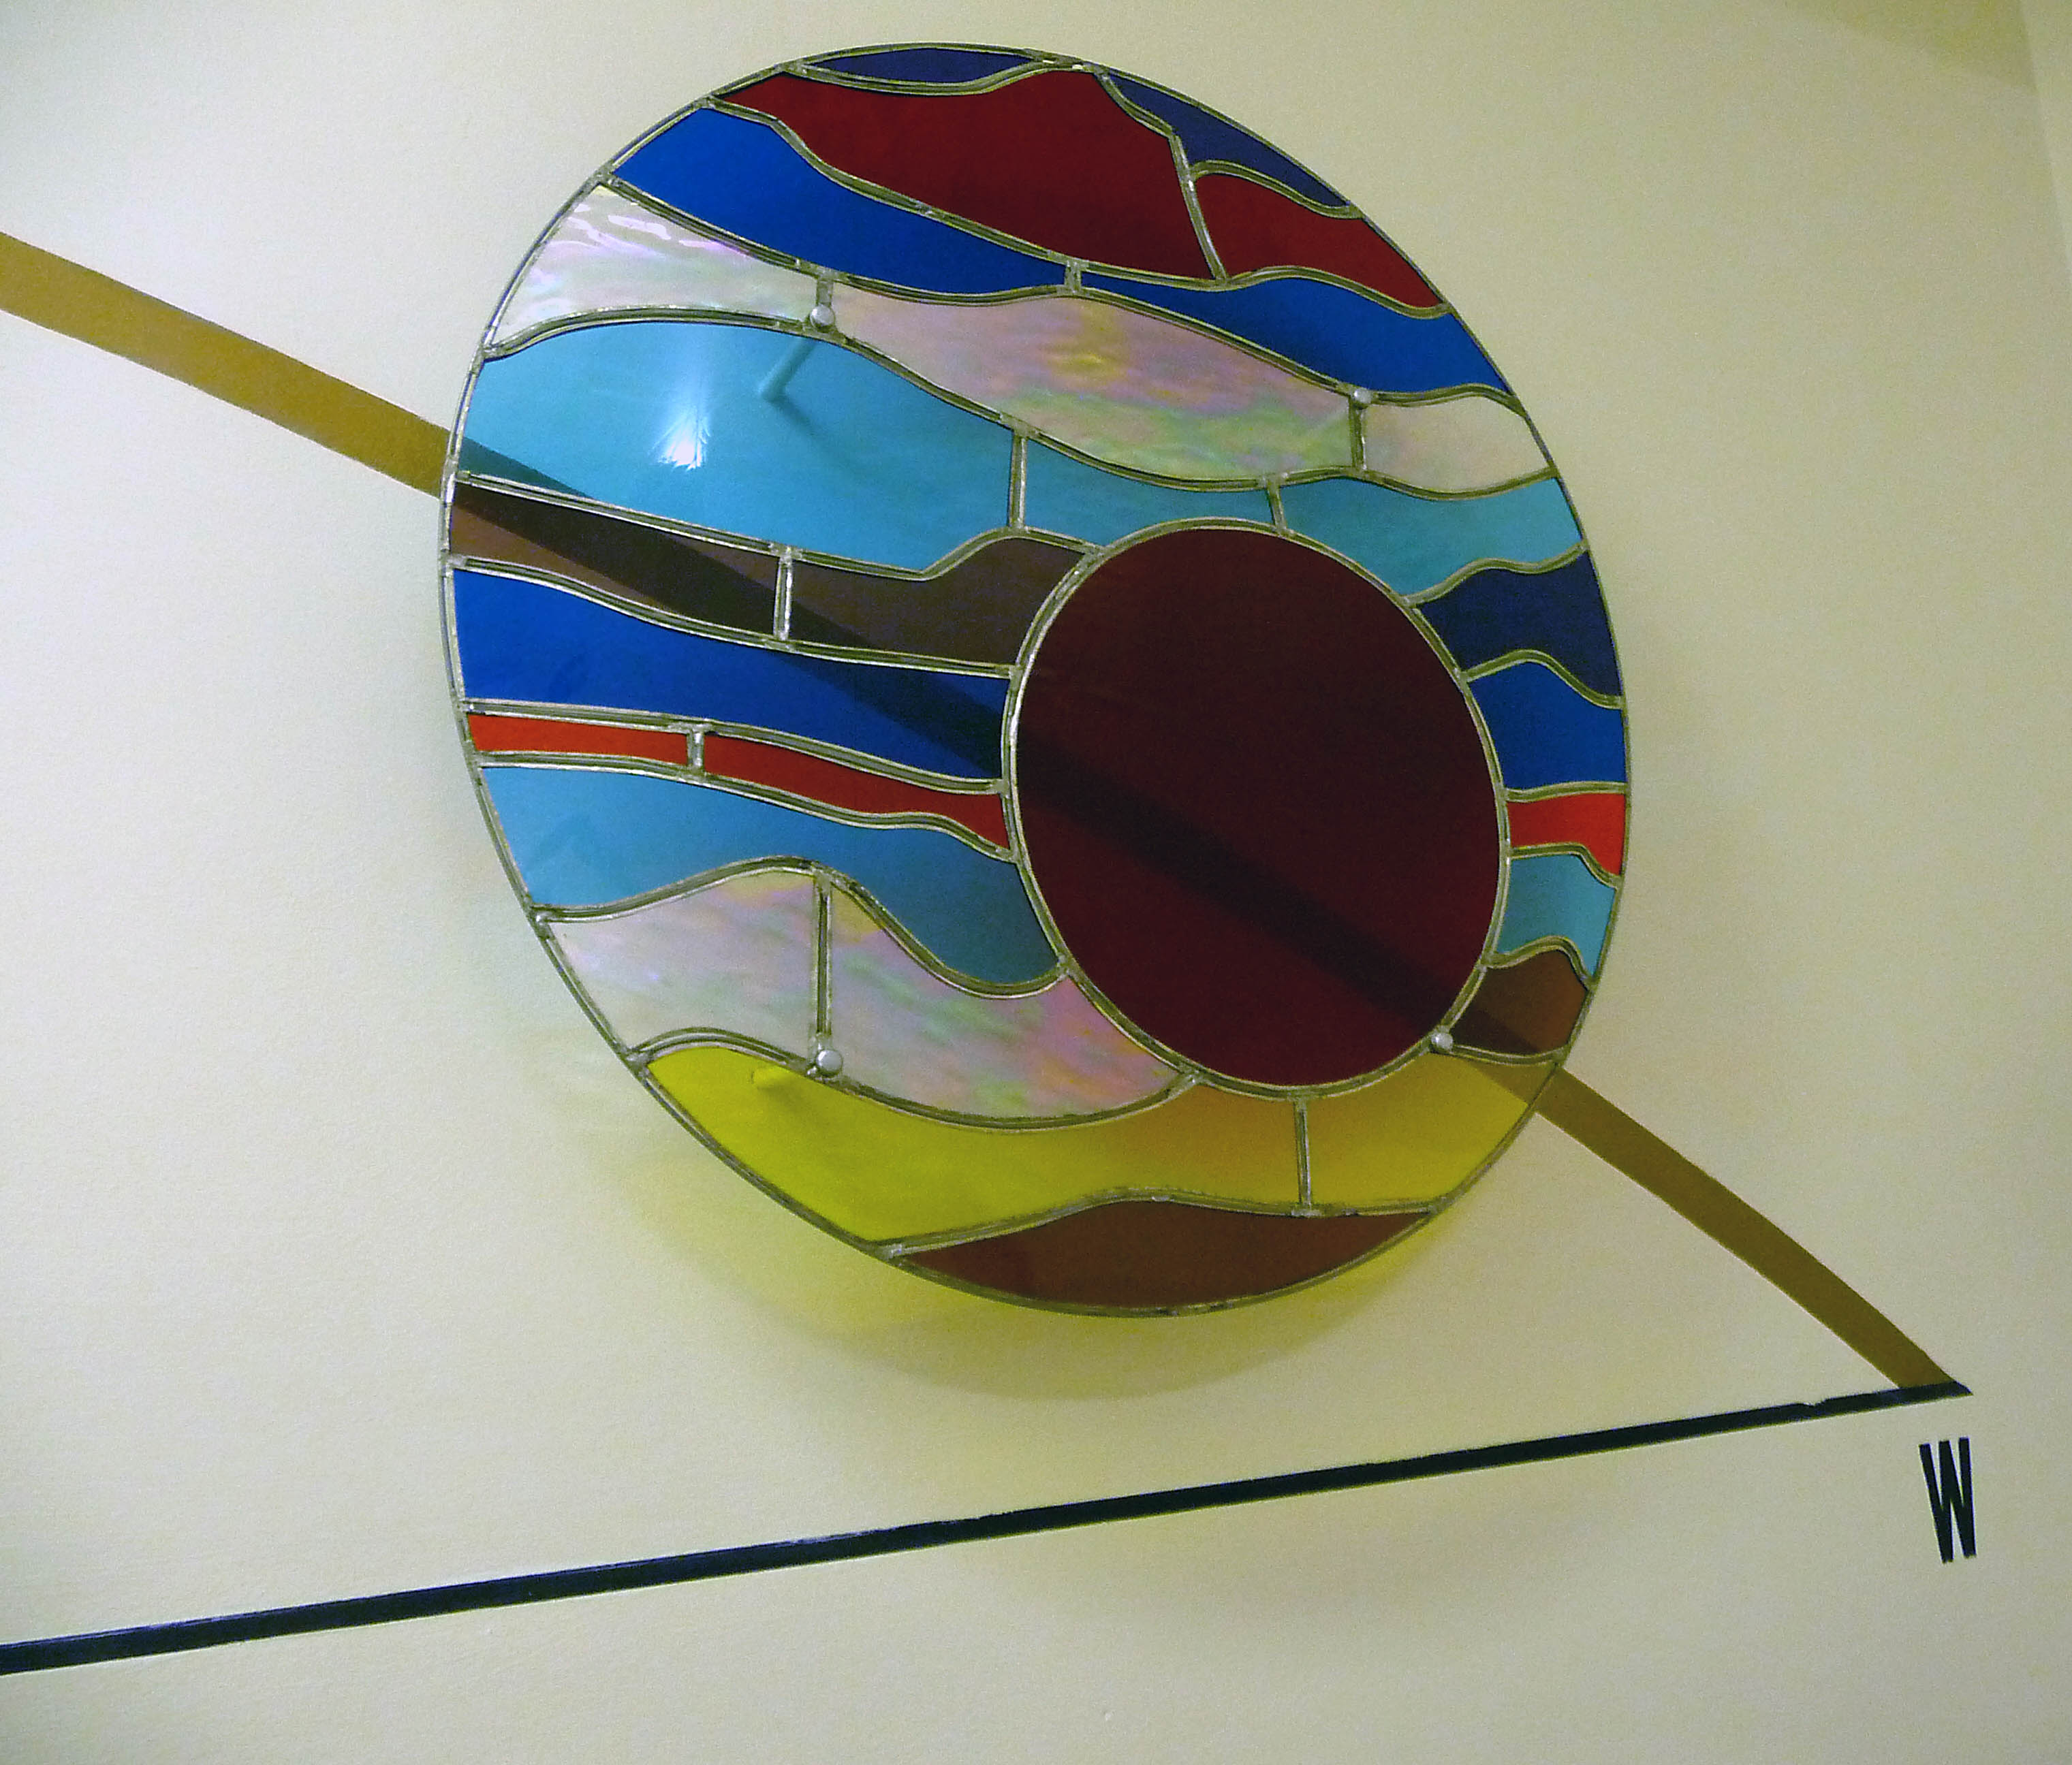 MOTIONS OF THE SUN (SUNSET), 1998 by Alan Ditman, 1998, foiled stained glass, steel wire, paint